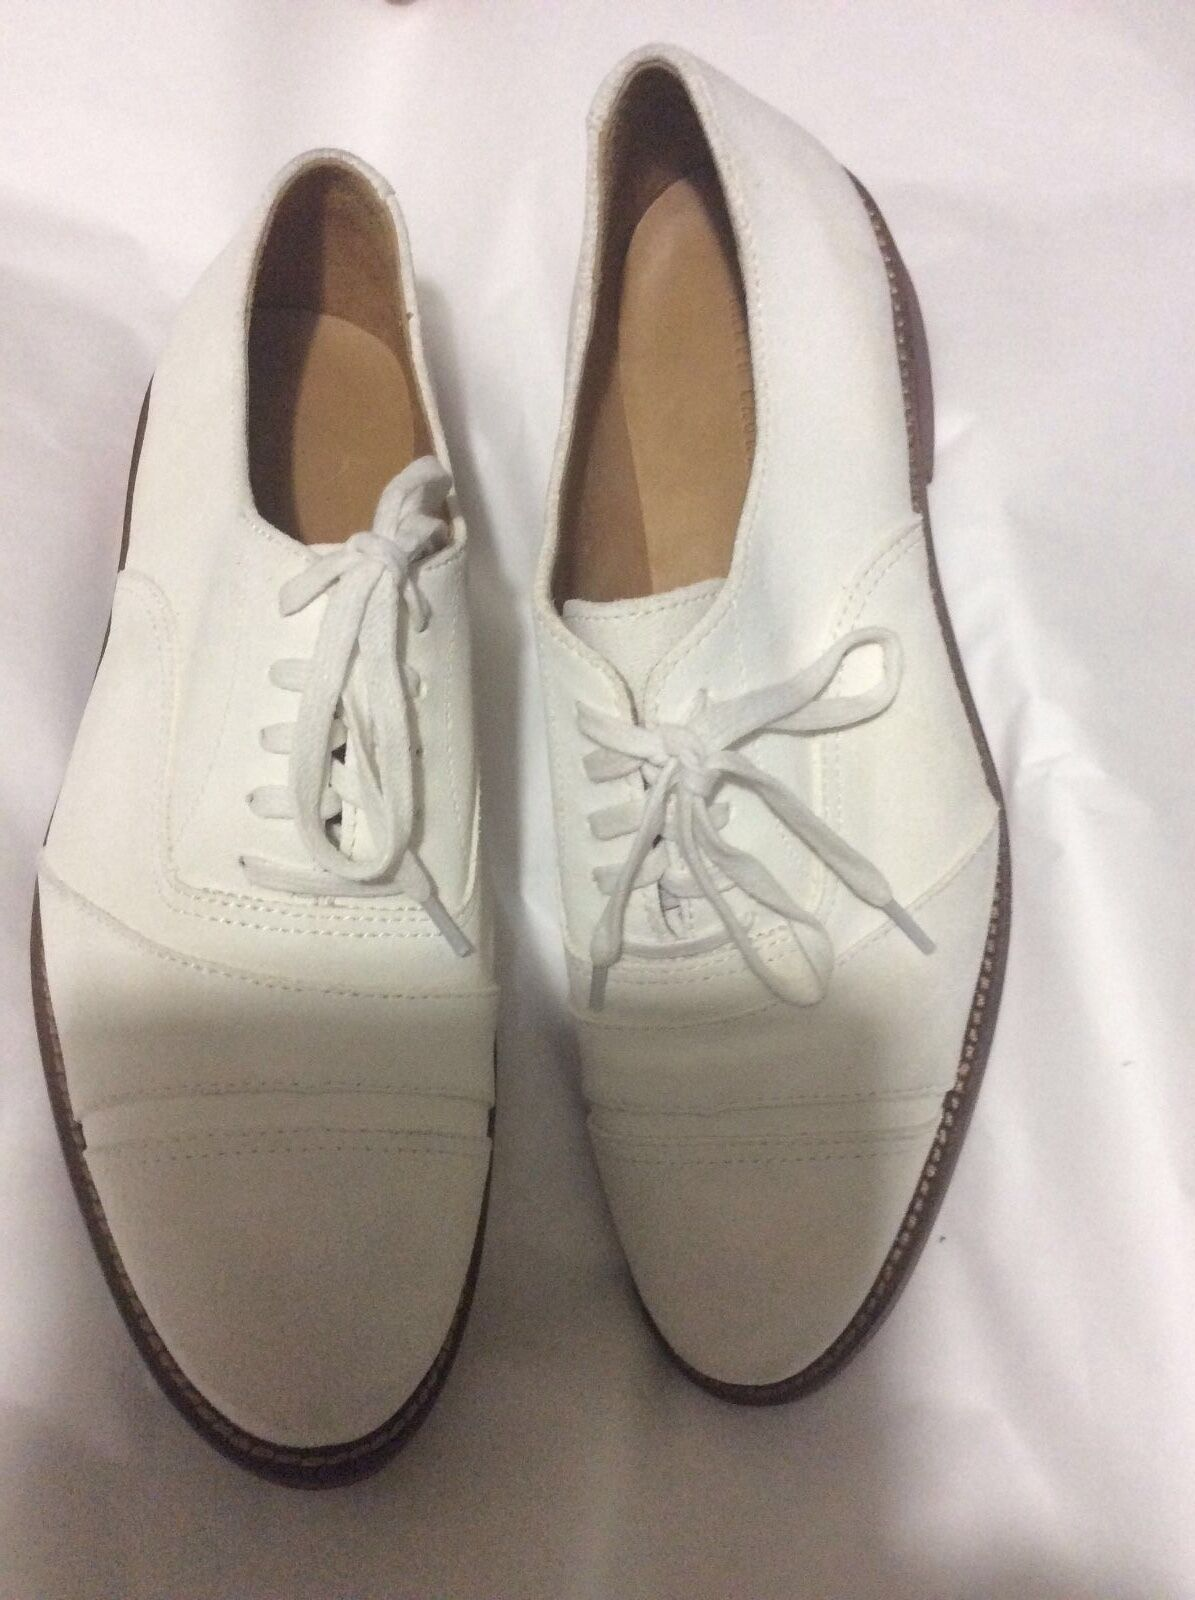 Ralph Lauren Team USA Olympic Flat White Nubuck Oxford Shoes - W10/M8